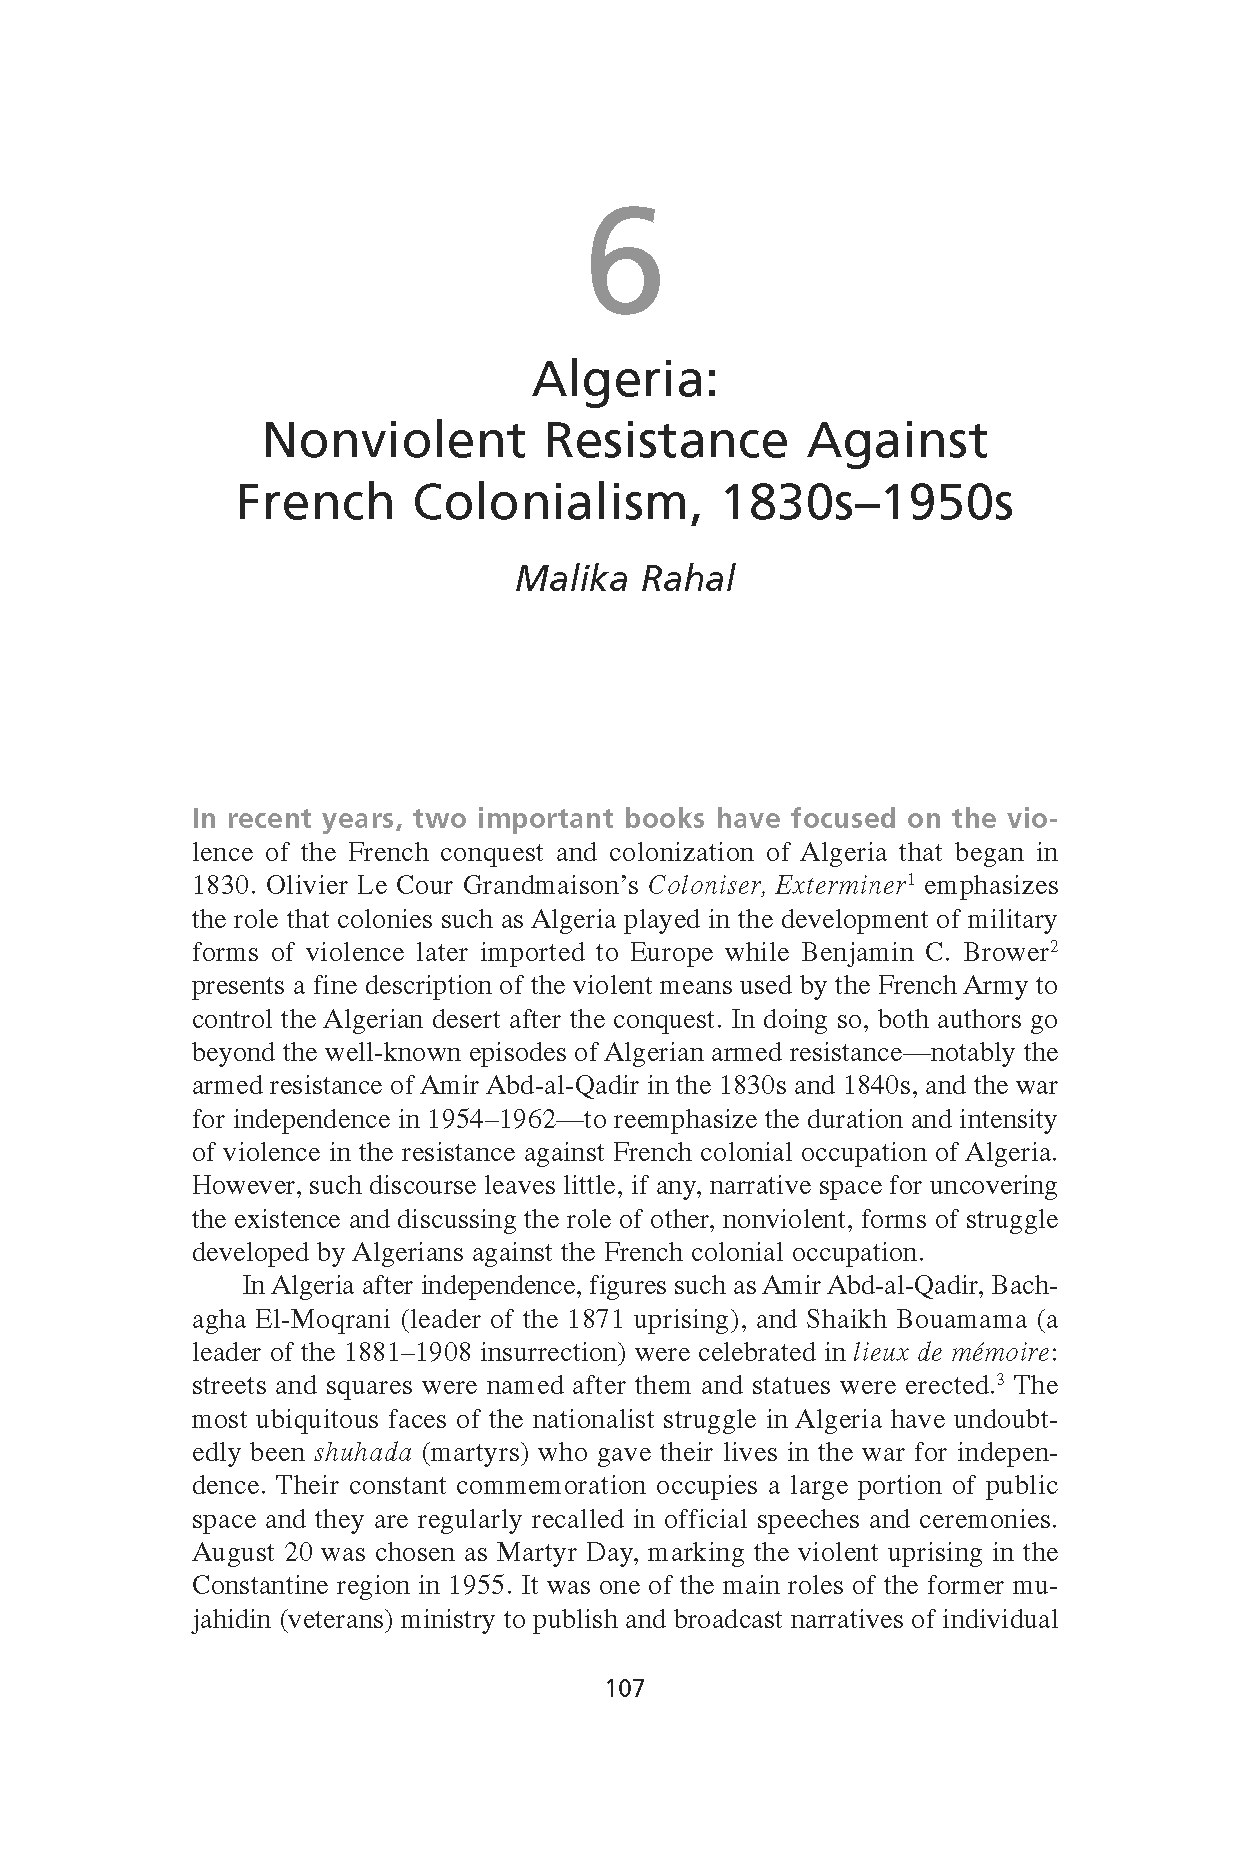 Algeria: Nonviolent Resistance Against French Colonialism, 1830s-1950s (Chapter 6 from 'Recovering Nonviolent History')